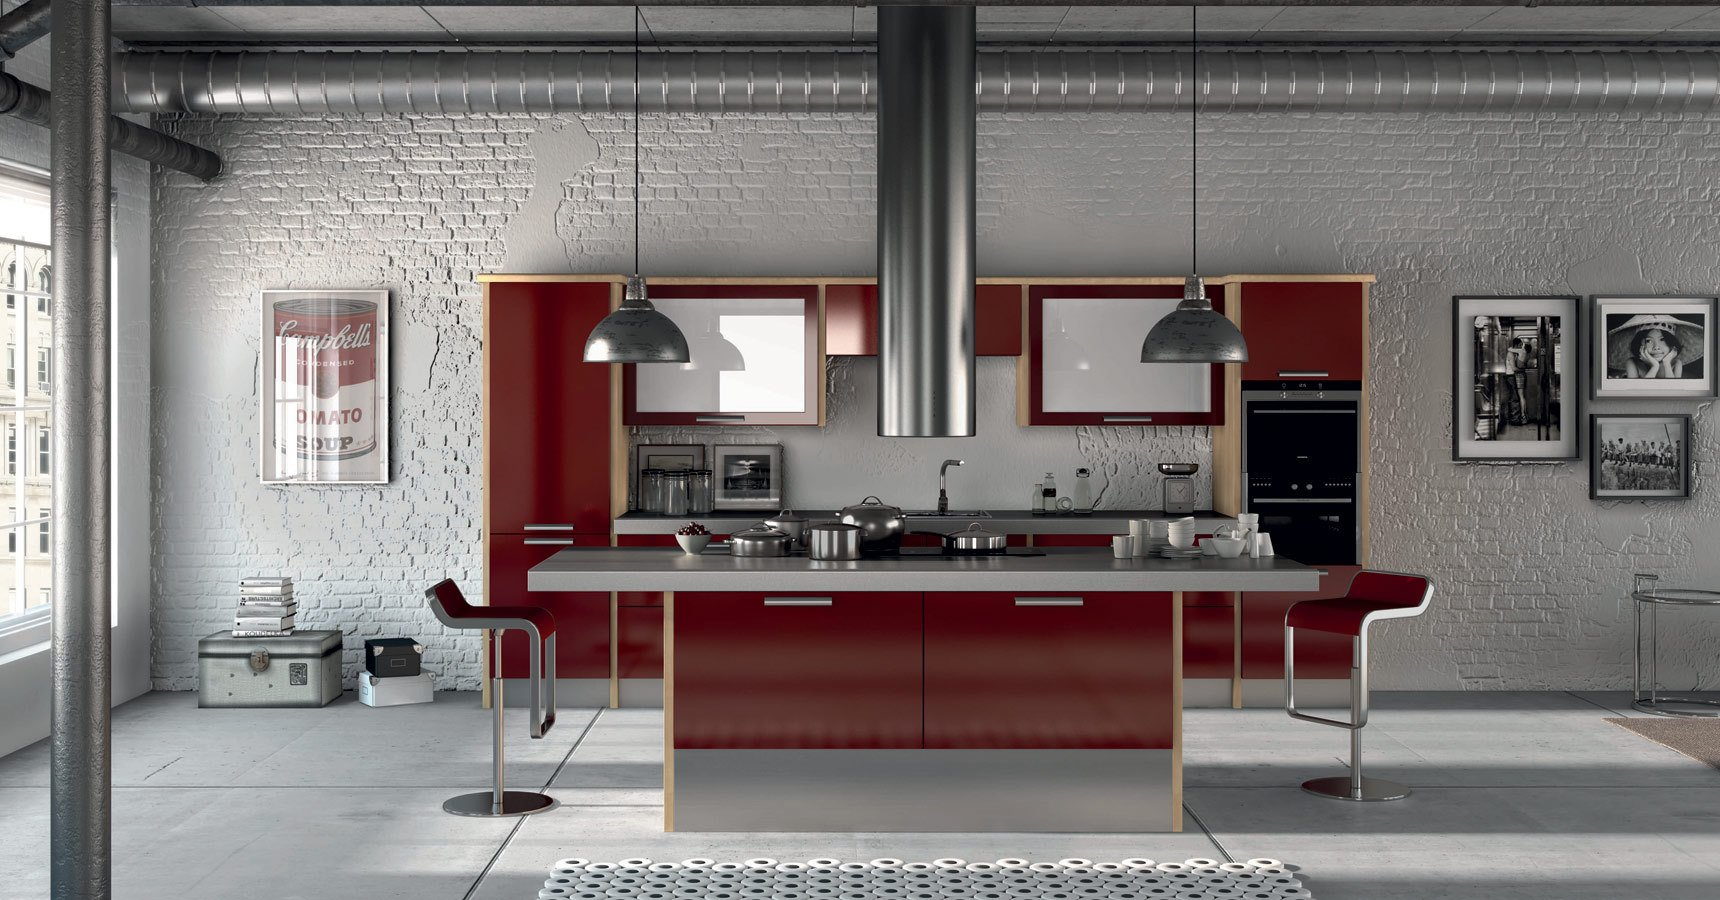 Modern spacious kitchen with metal table and red detail